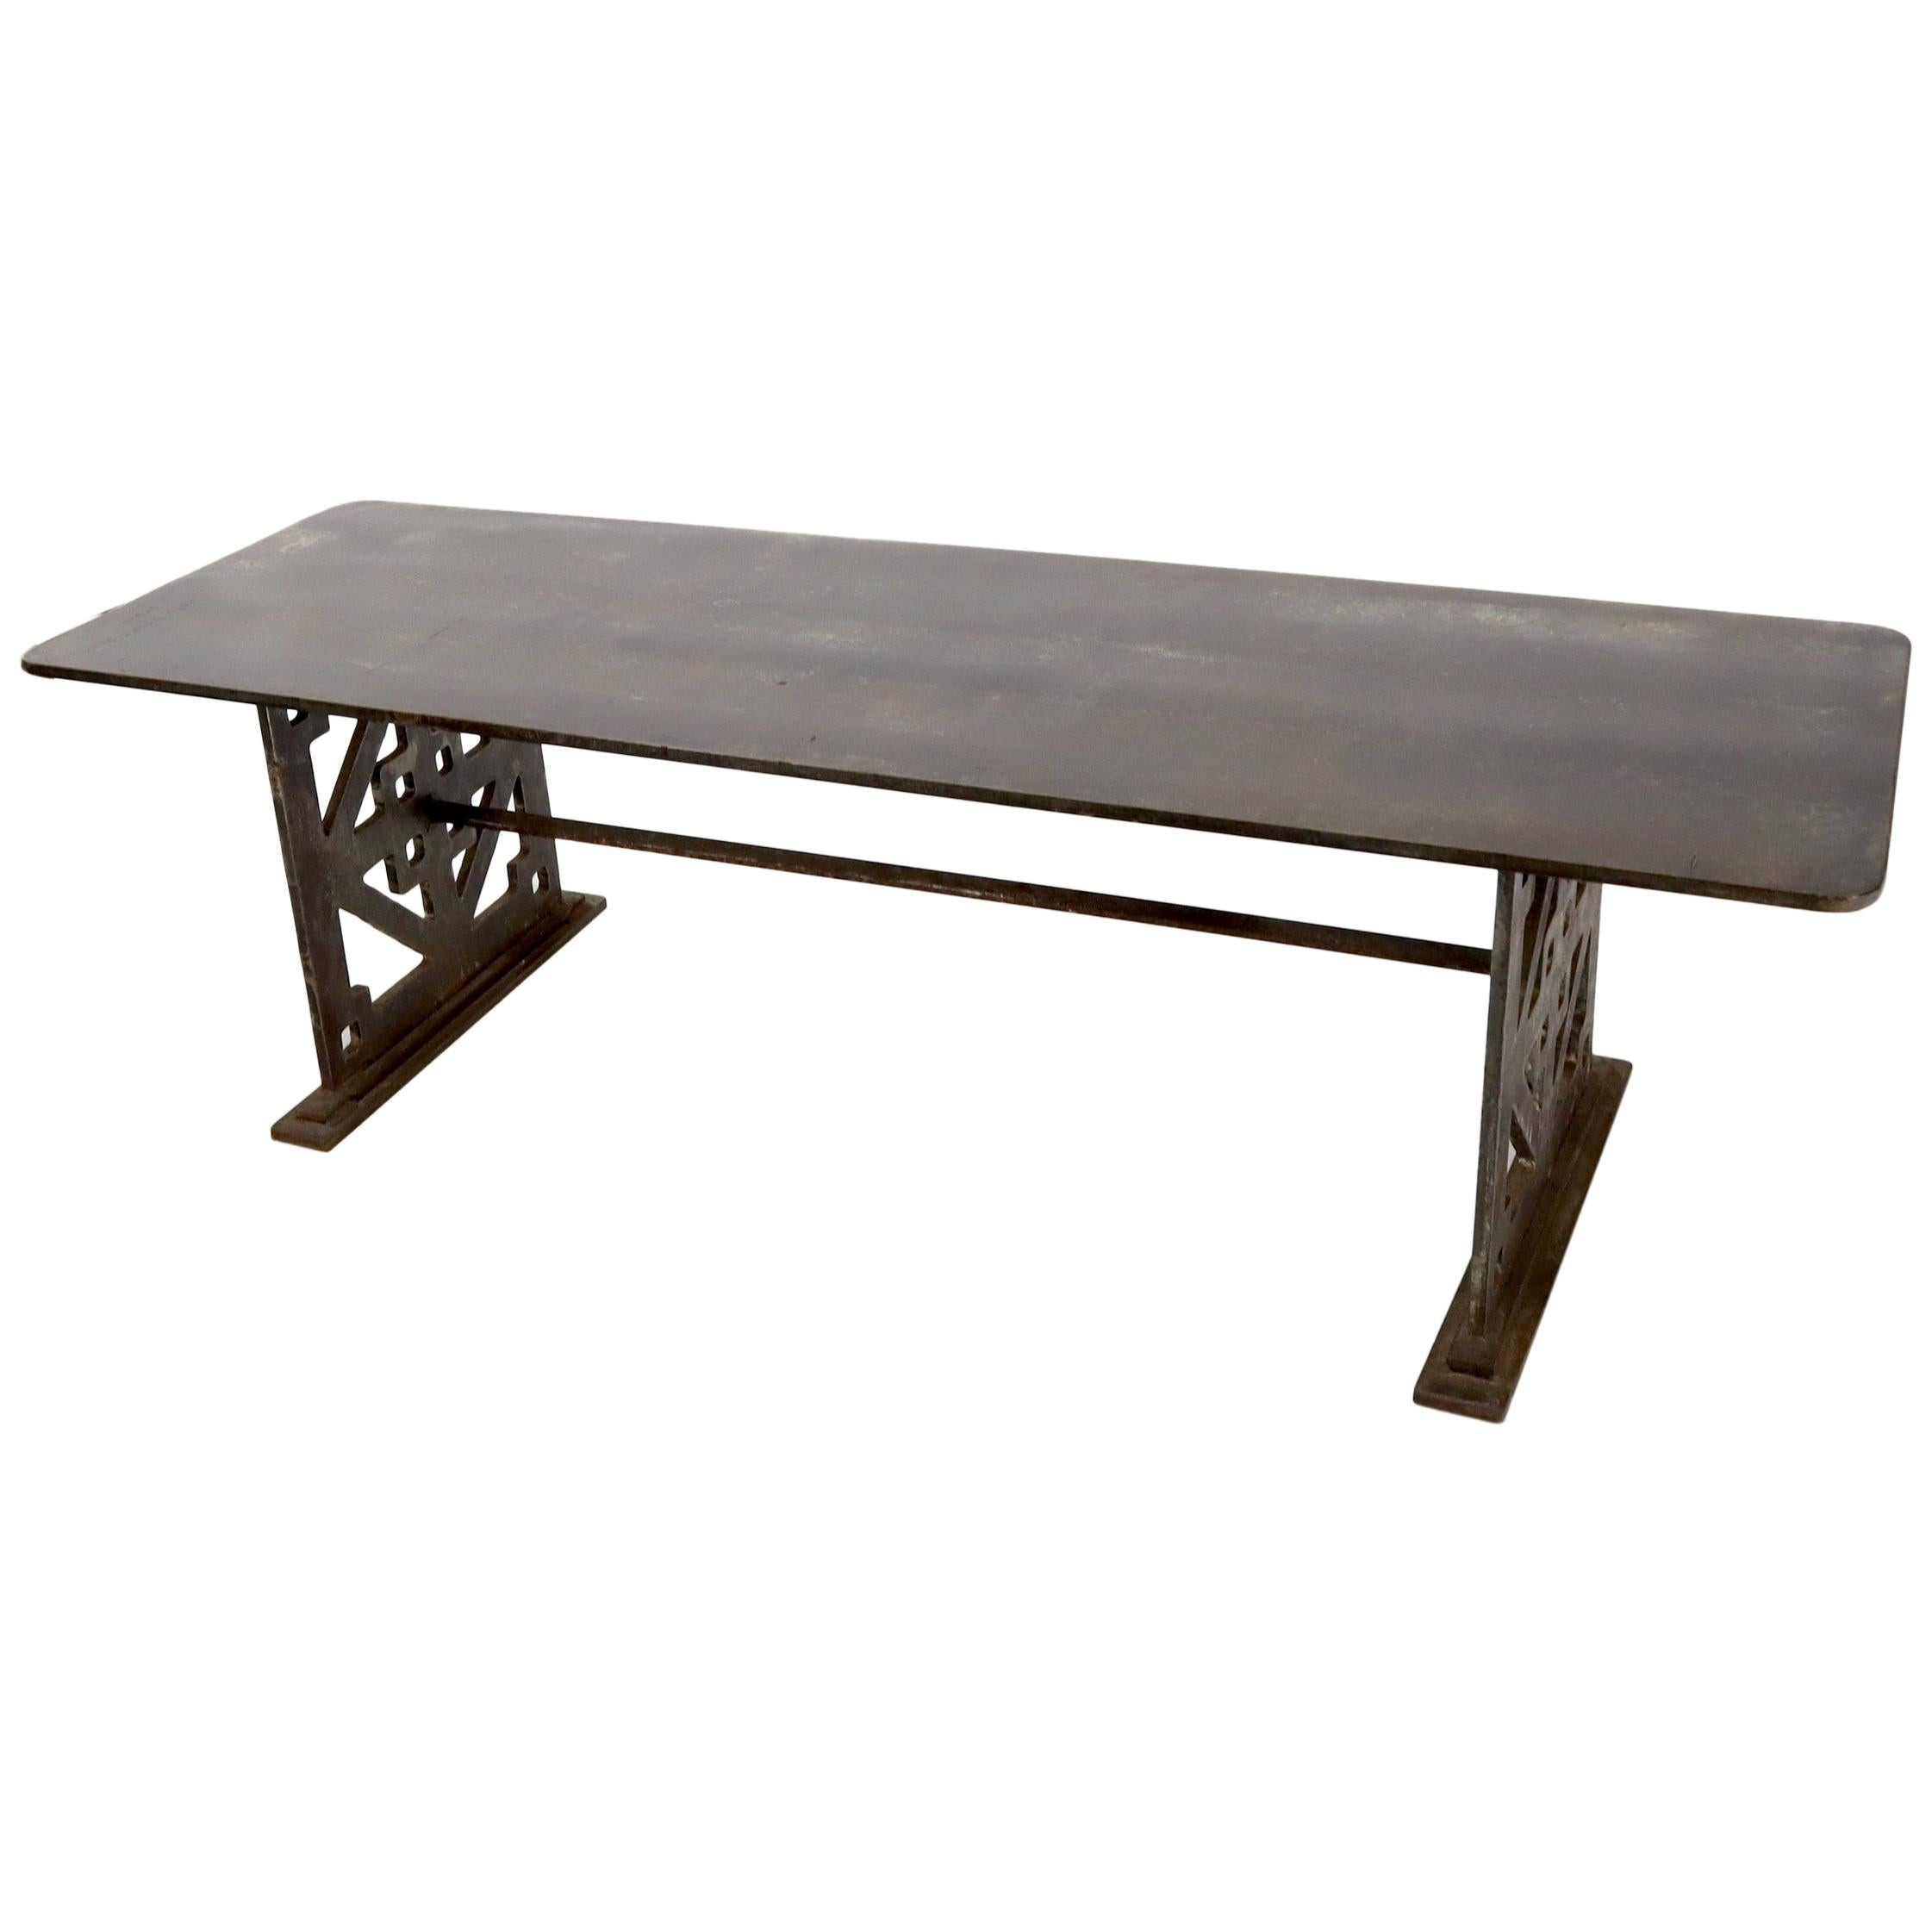 Thick Solid Steel Plate Top Pierced Base Coffee Table Steam Punk Coffee Table